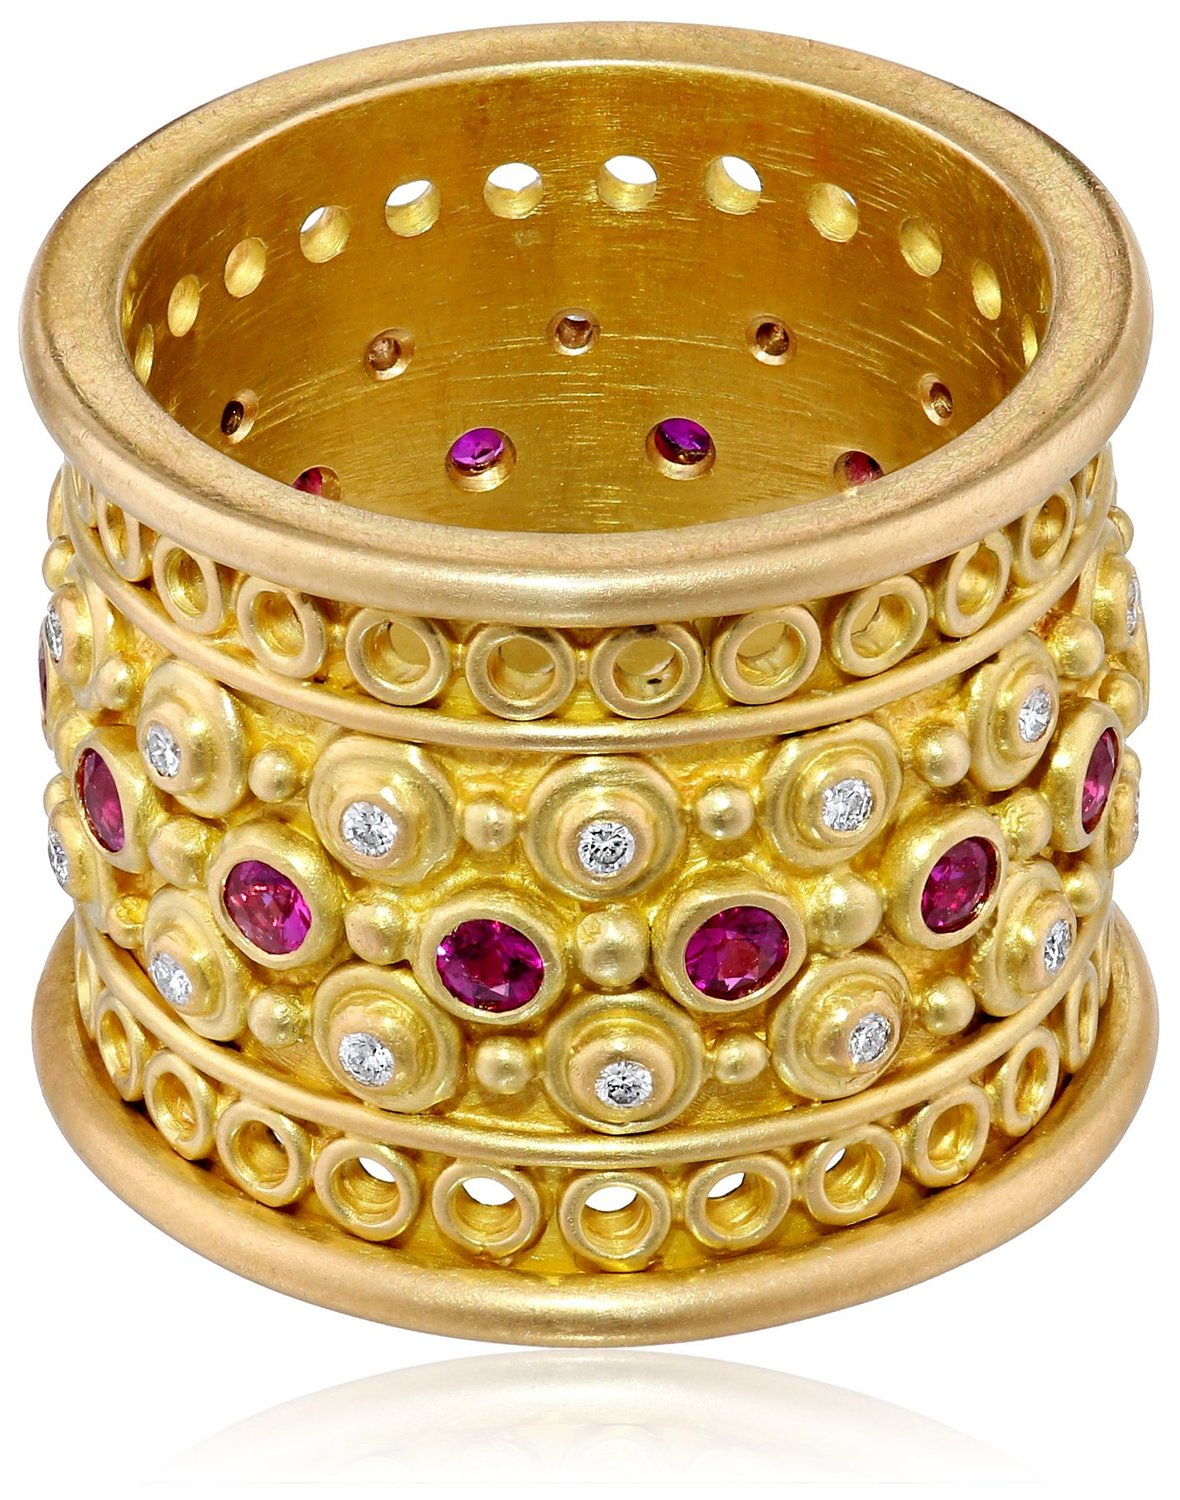 Amazon.com: annie fensterstock burmese crown ring, size 7: jewelry